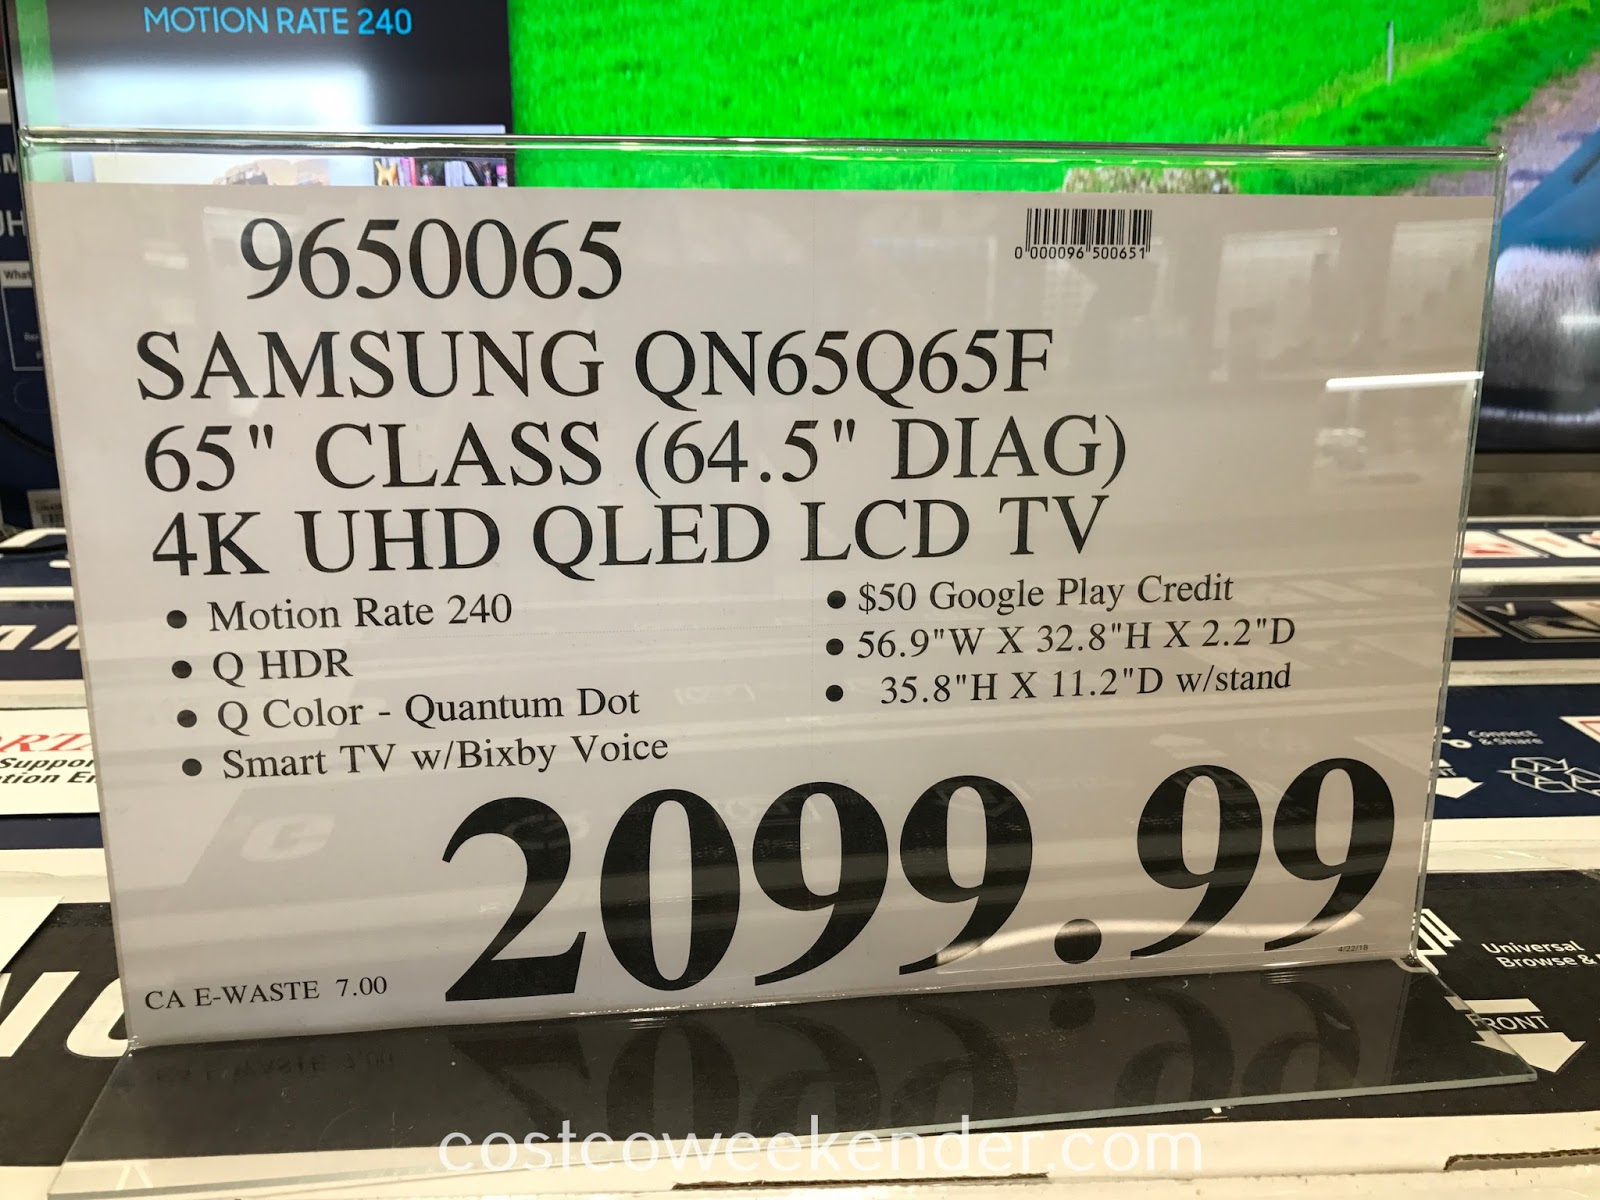 Deal for the Samsung QN65Q65F 65in tv at Costco